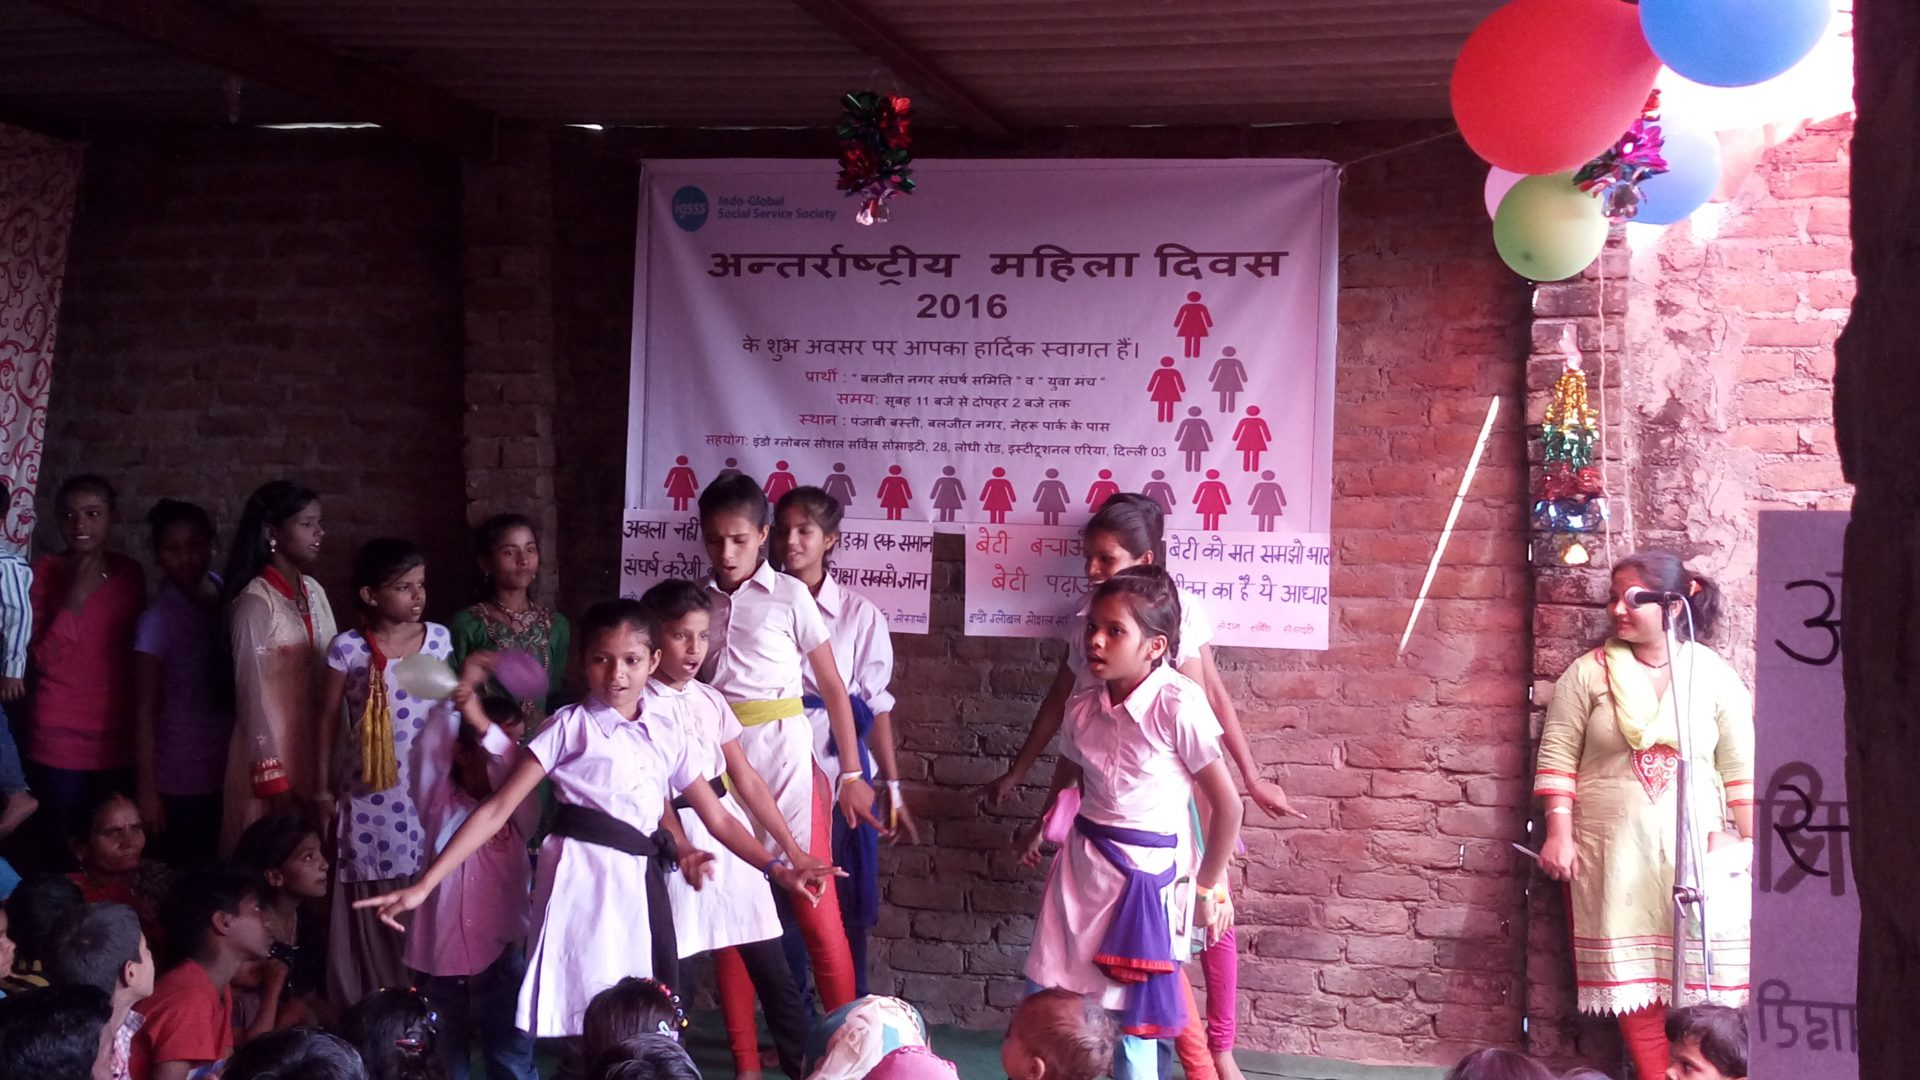 Women's Day Celebration at Baljeet Nagar Slum